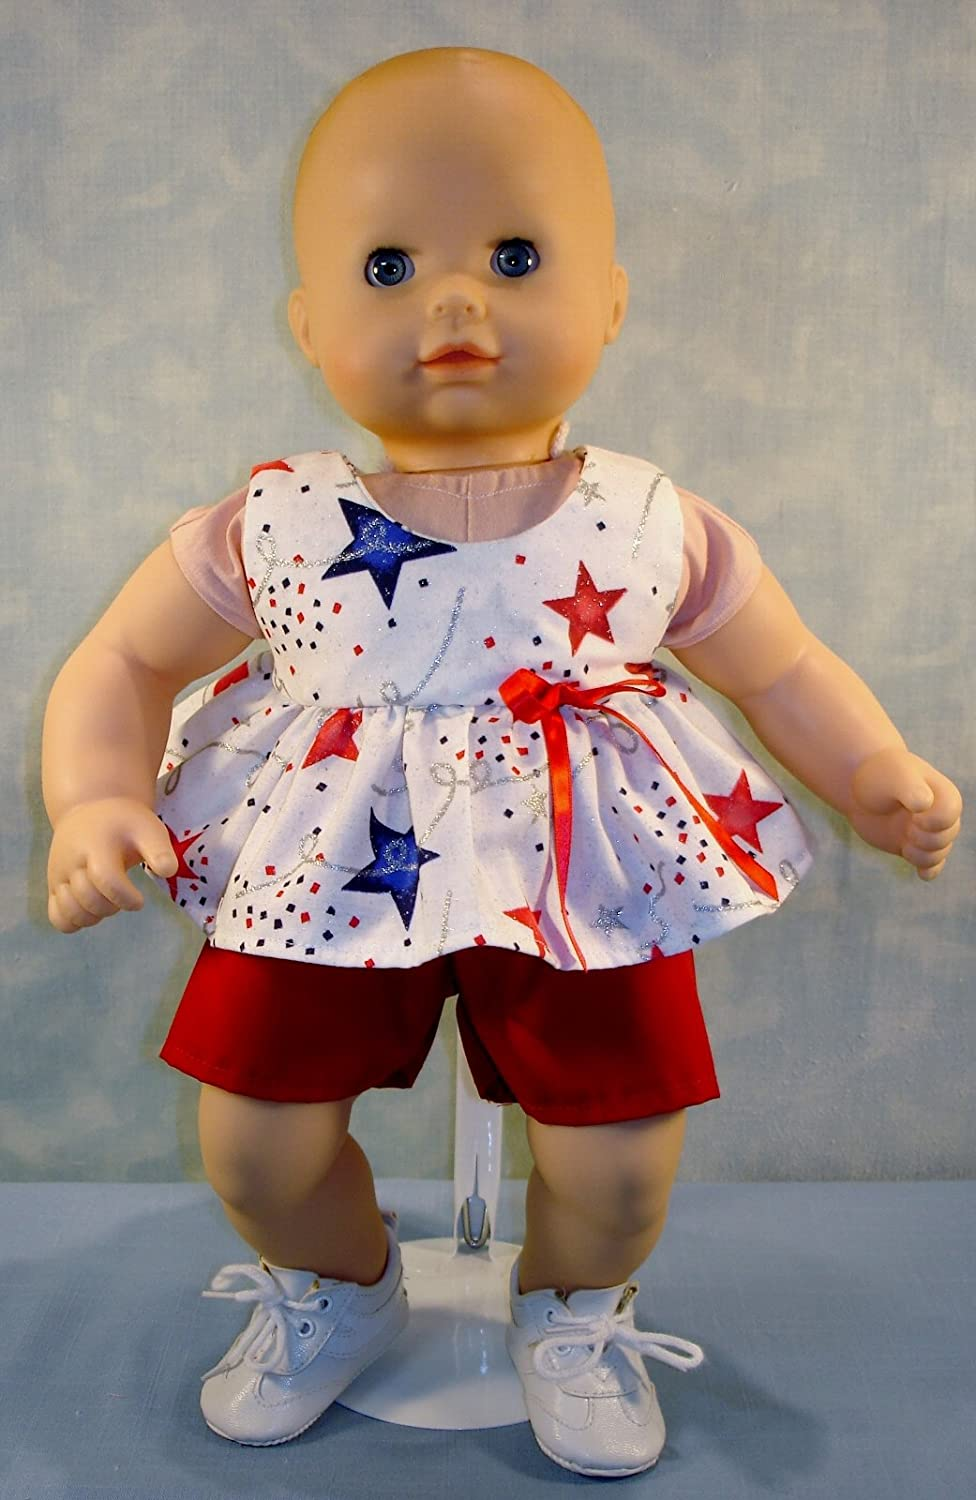 15 Inch Doll Clothes - 4th of July Stars and Confetti with Red Shorts Outfit handmade by Jane Ellen